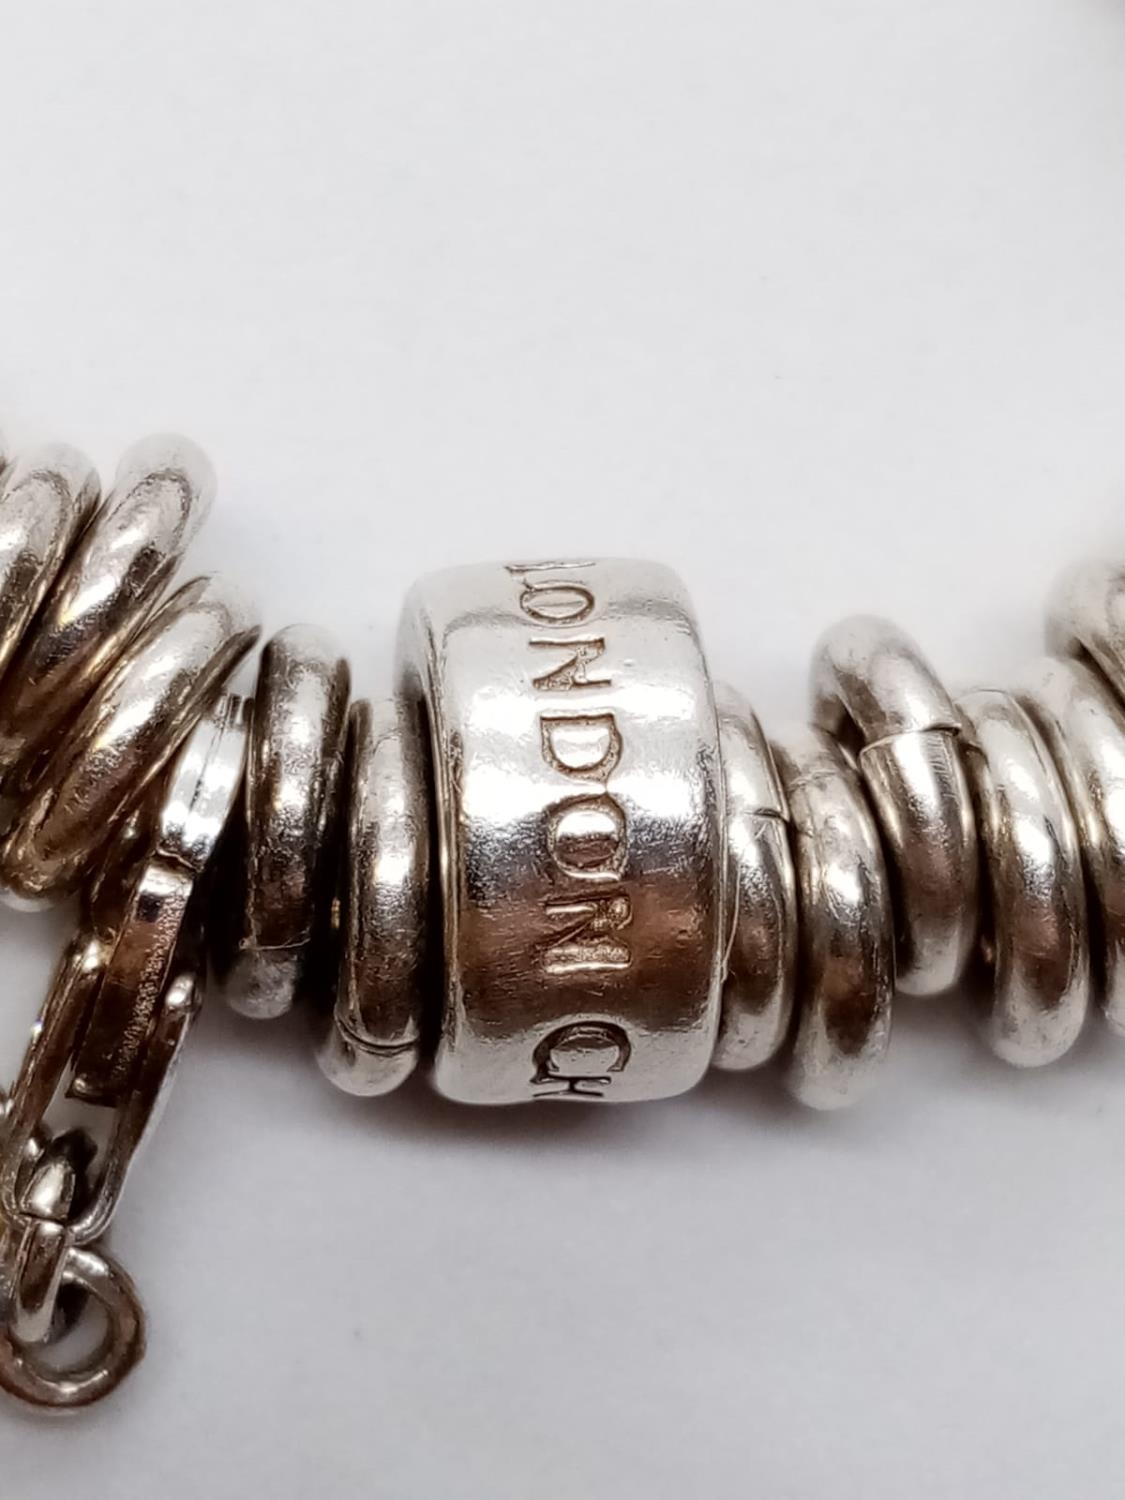 Heavy SILVER BRACELET, London Charm Co. 75.2g 10 charms. - Image 6 of 9